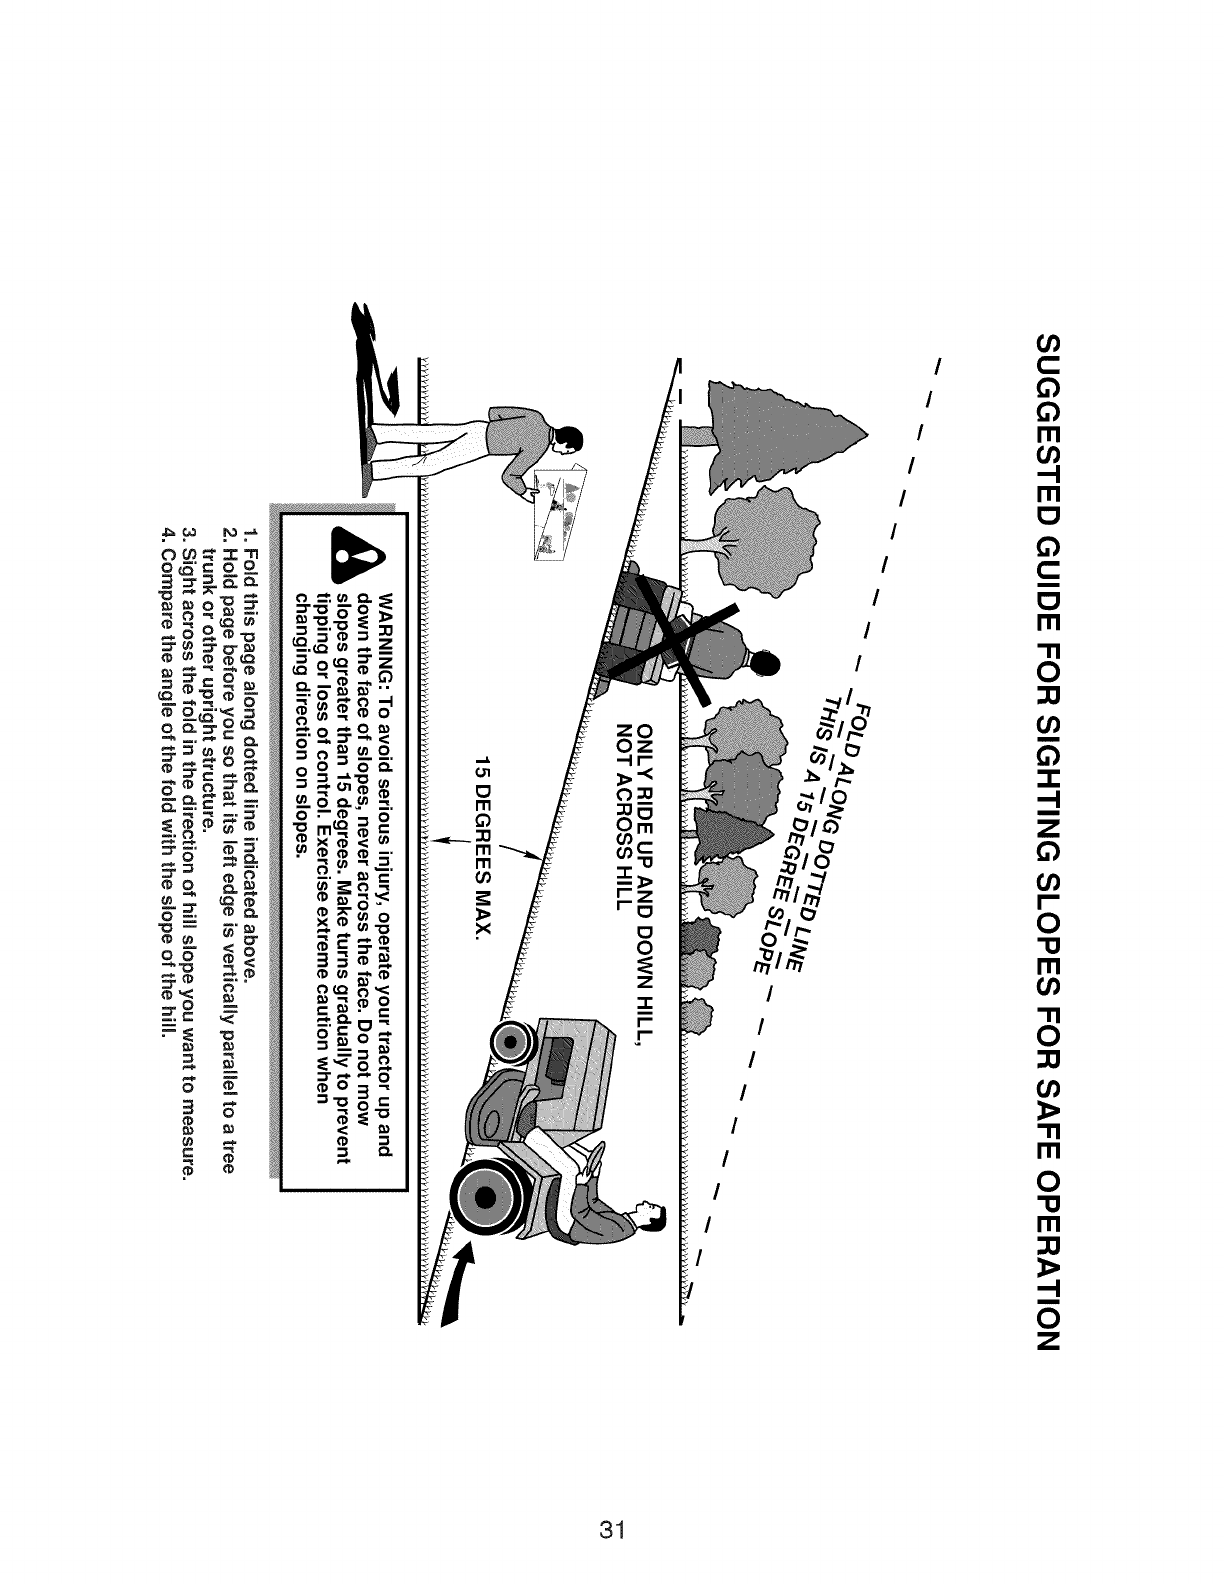 Page 31 of Craftsman Lawn Mower YT 3000 User Guide